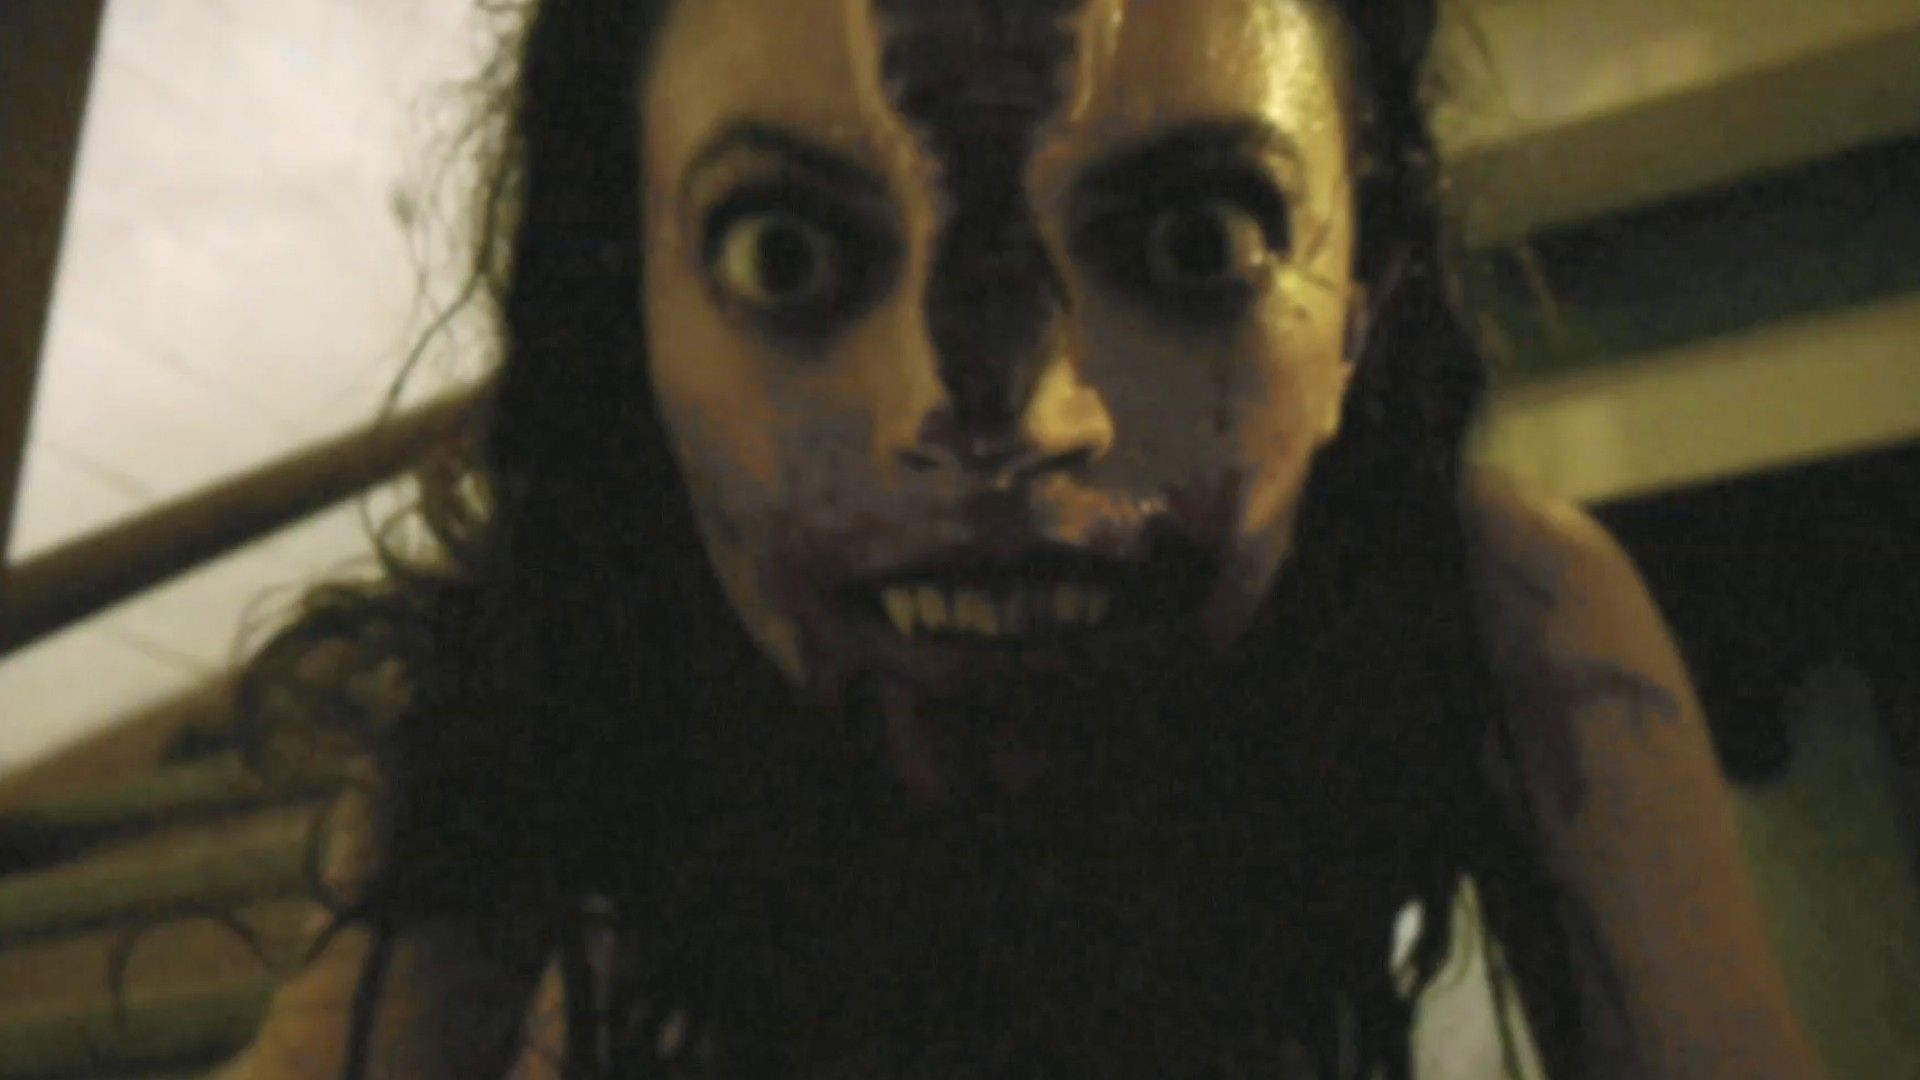 V/H/S - Adam Wingard, David Bruckner, Ti West, Glenn McQuaid